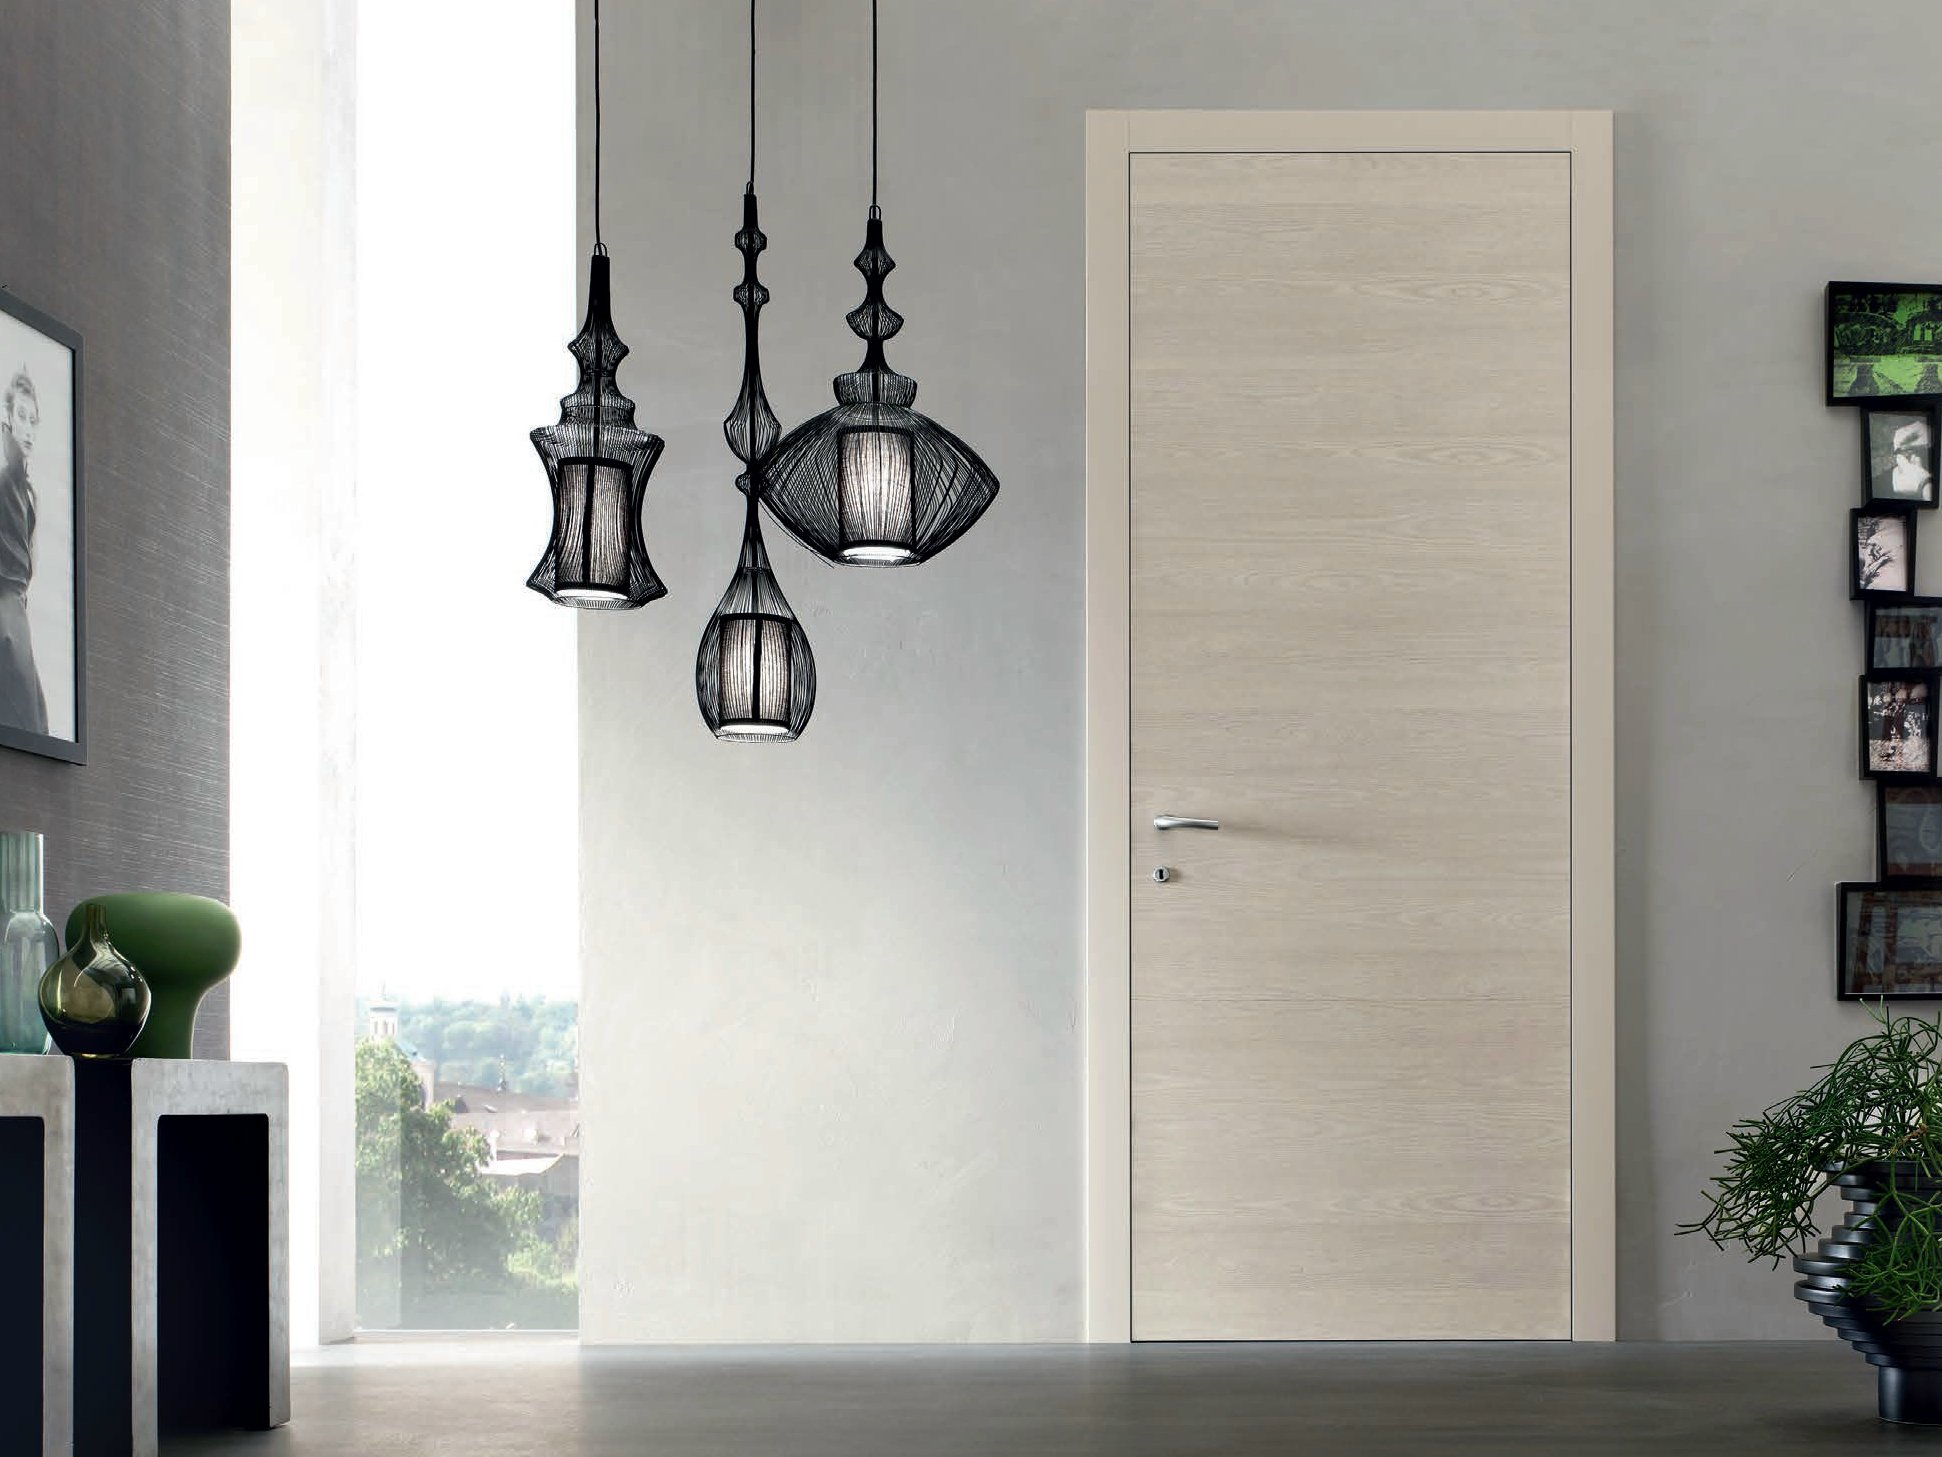 Hinged elm door randa vela collection by door 2000 by for Gruppo door 2000 spa